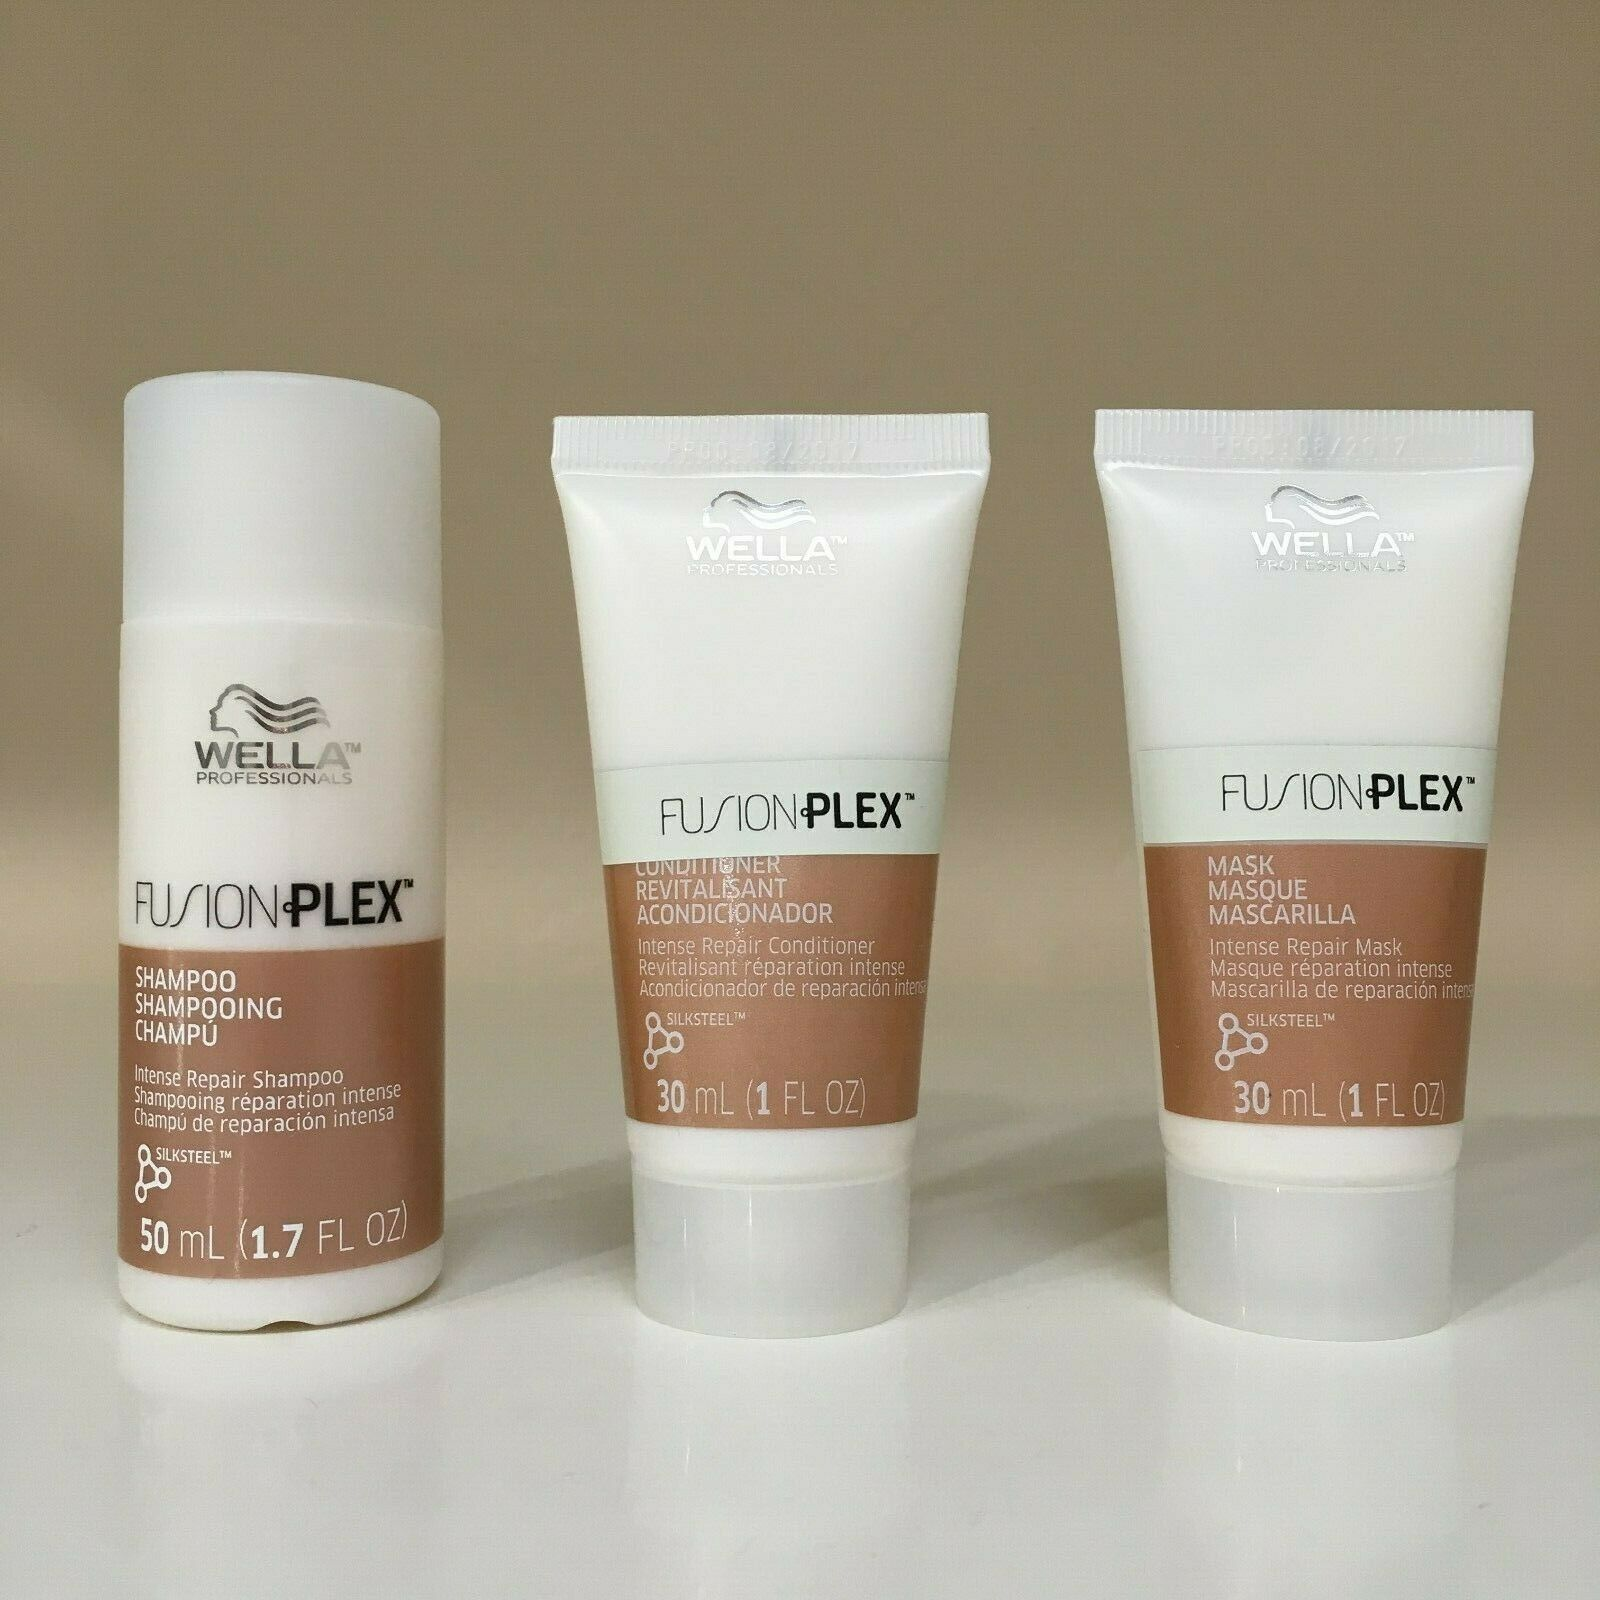 Wella FUSIONPLEX Shampoo, Conditioner, Mask - Travel Size **